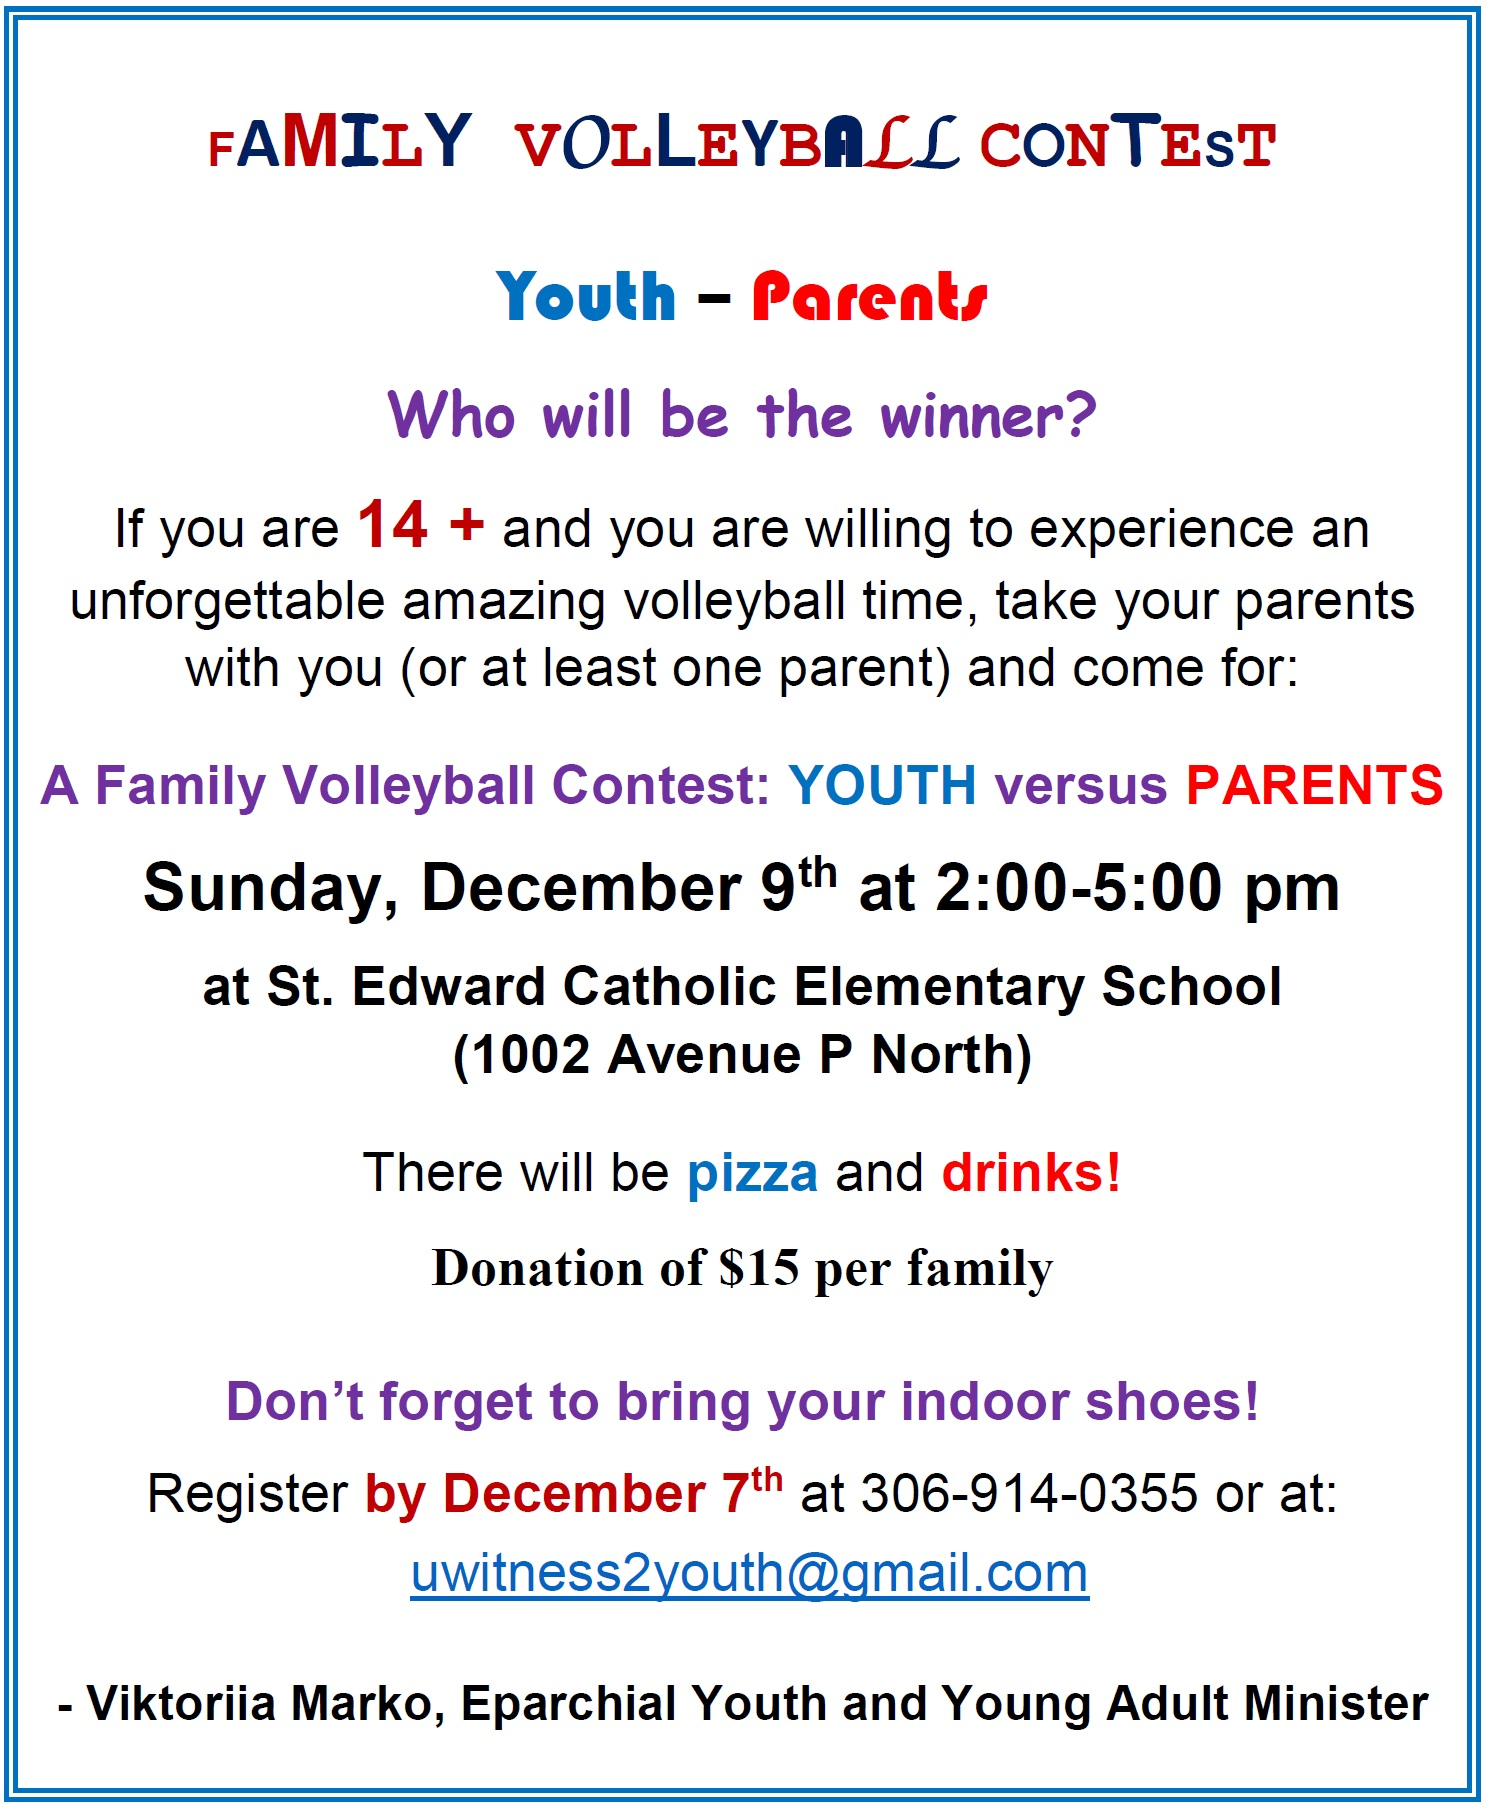 2:00 Pm Family Volleyball Contest Youth 14 Versus Parents Sunday